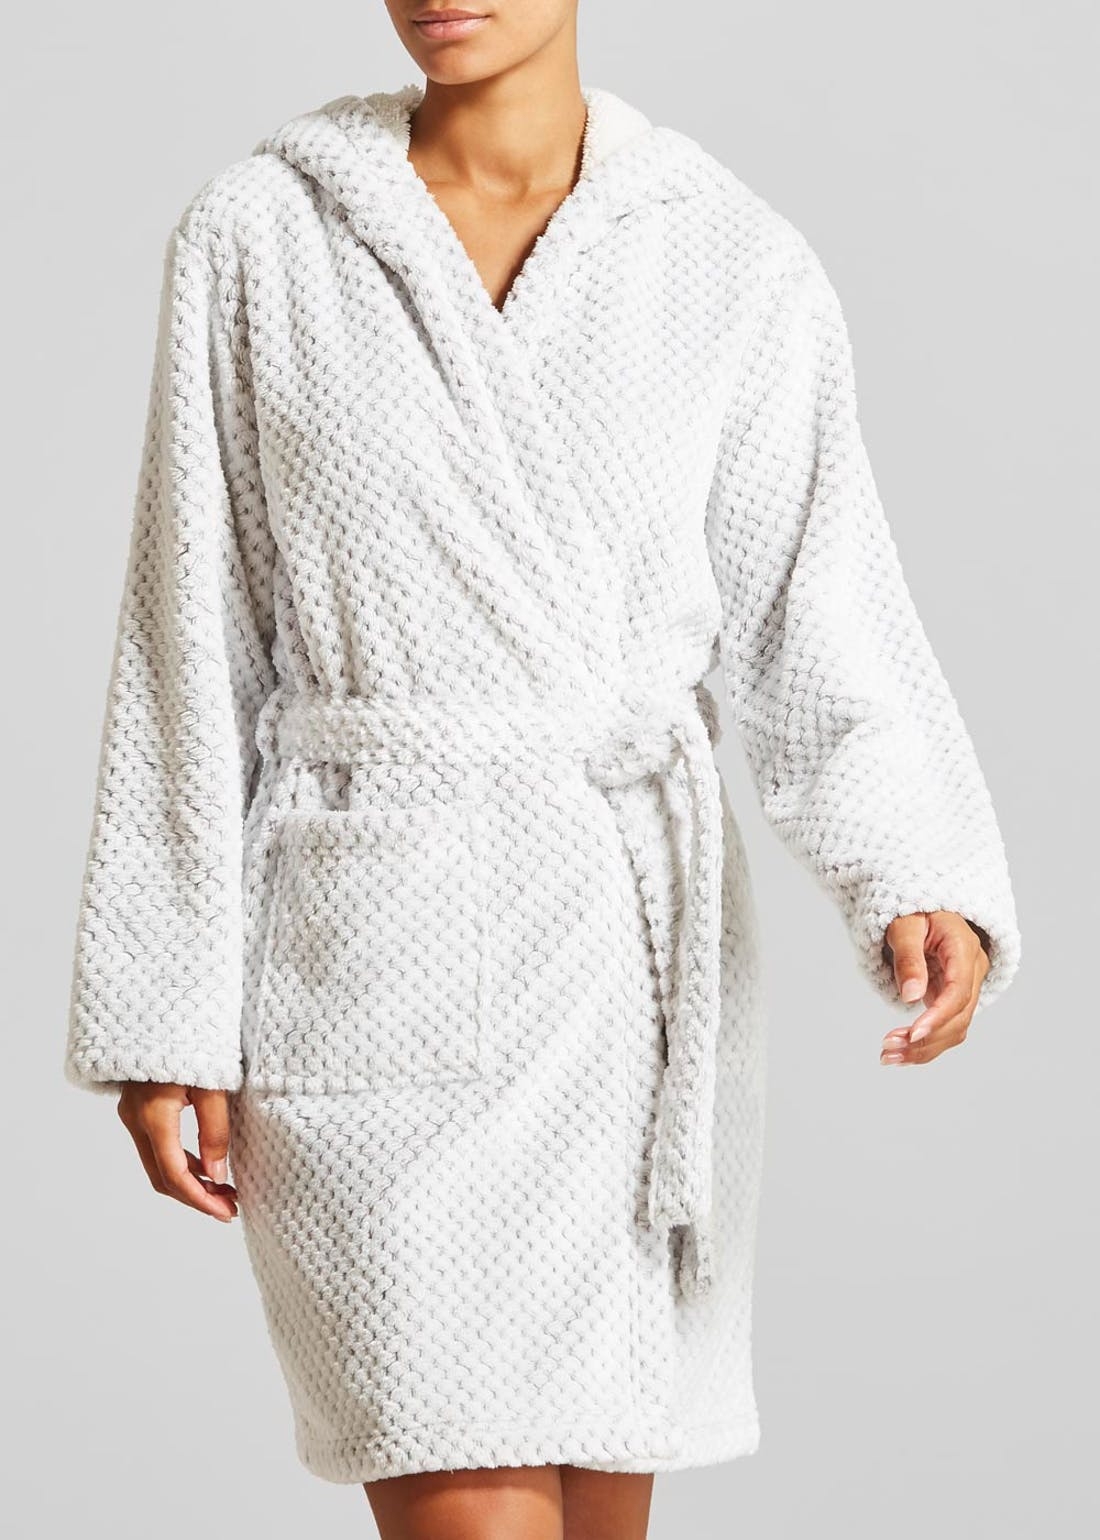 Honeycomb Textured Hooded Dressing Gown